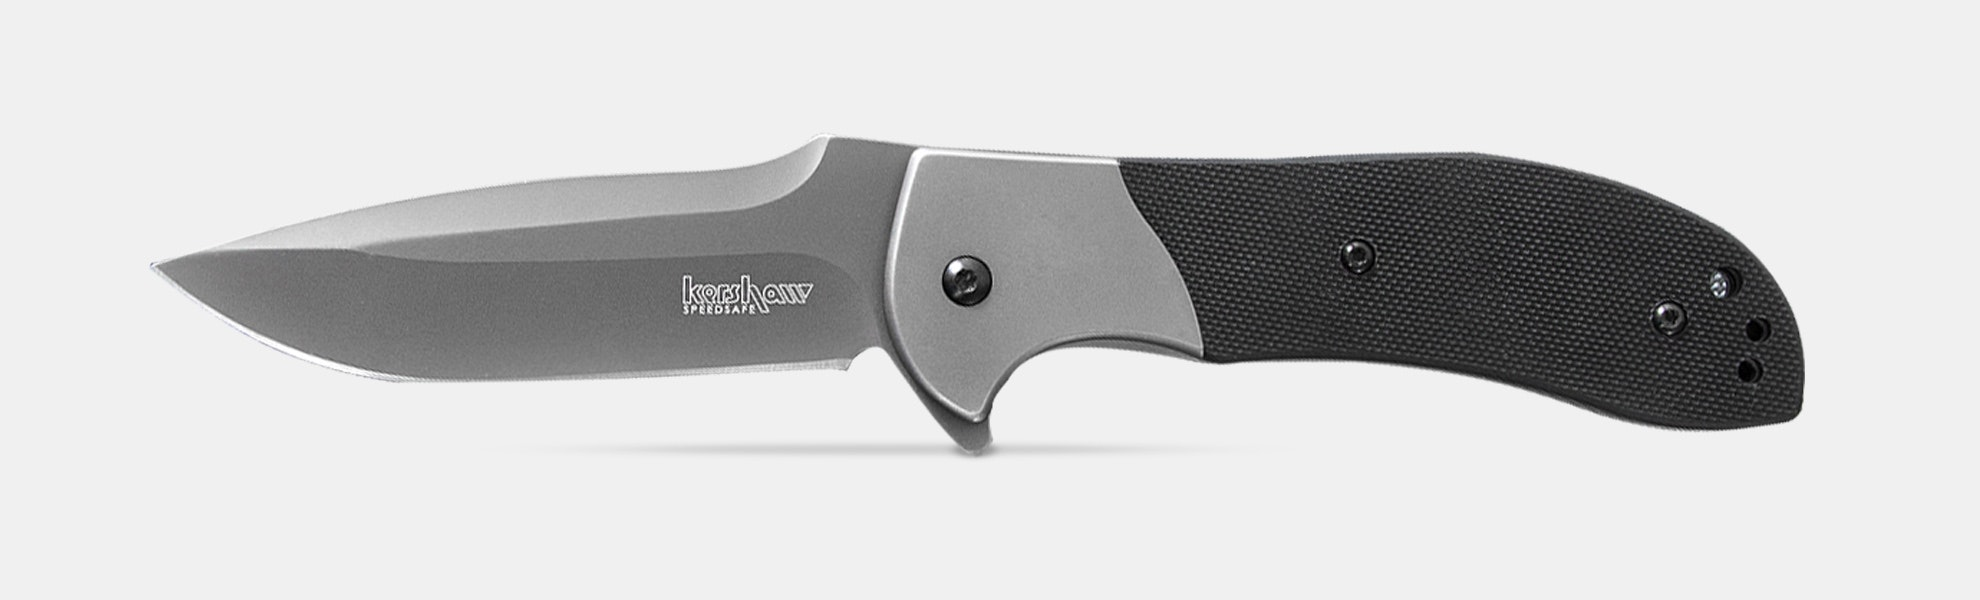 Kershaw Scrambler Folding Knife